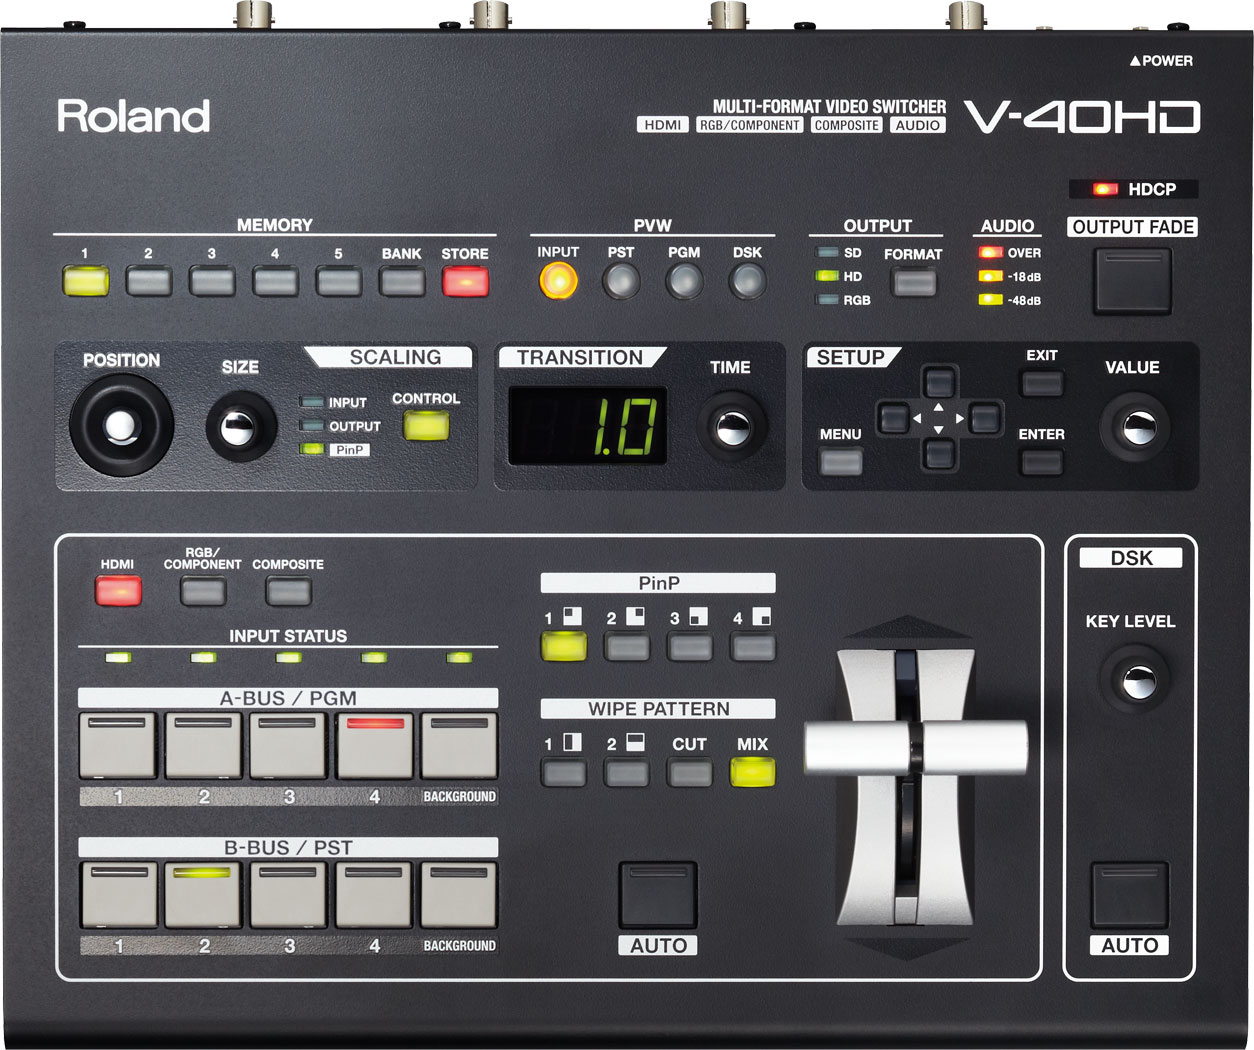 Roland Pro A V 40hd Multi Format Video Switcher Tutorial 3way Switches And 4way